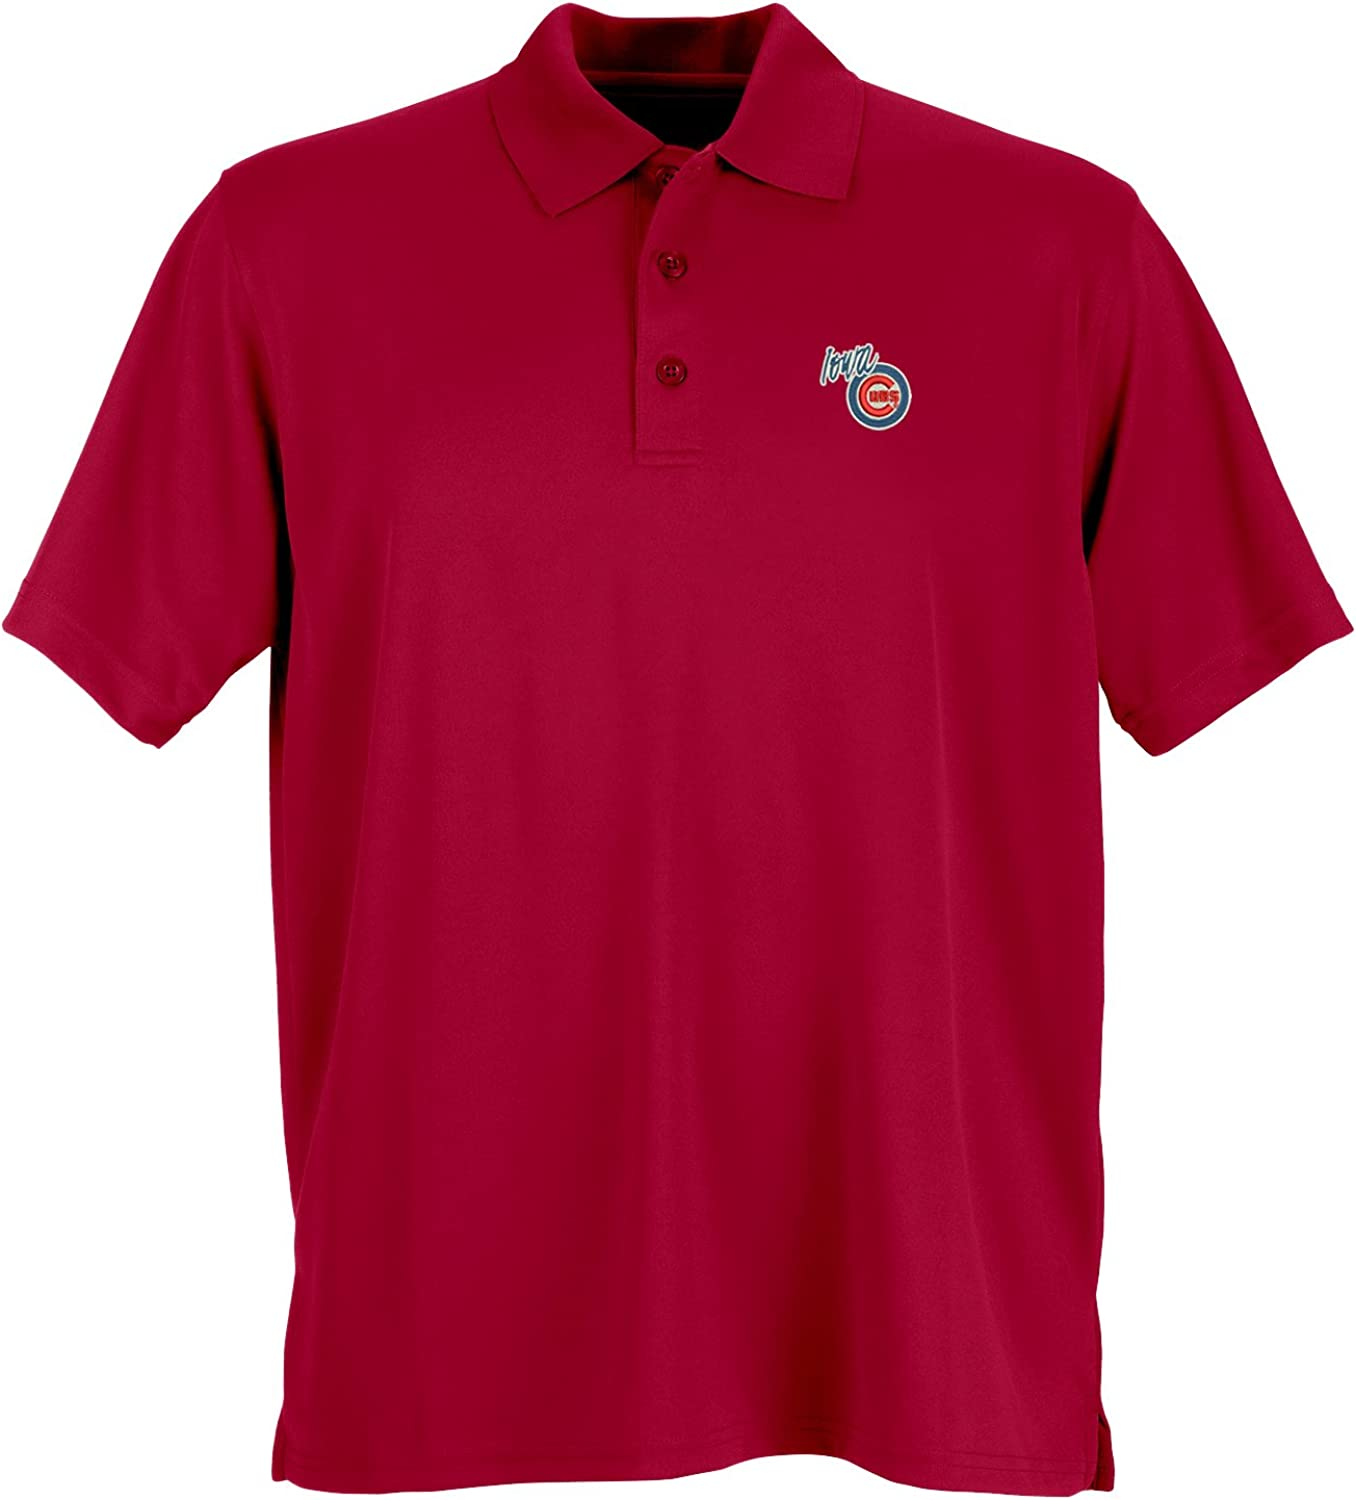 Vantage Apparel Minor League Baseball Iowa Cubs Mens Performance Mesh Polo Shirt Sport Red XX-Large